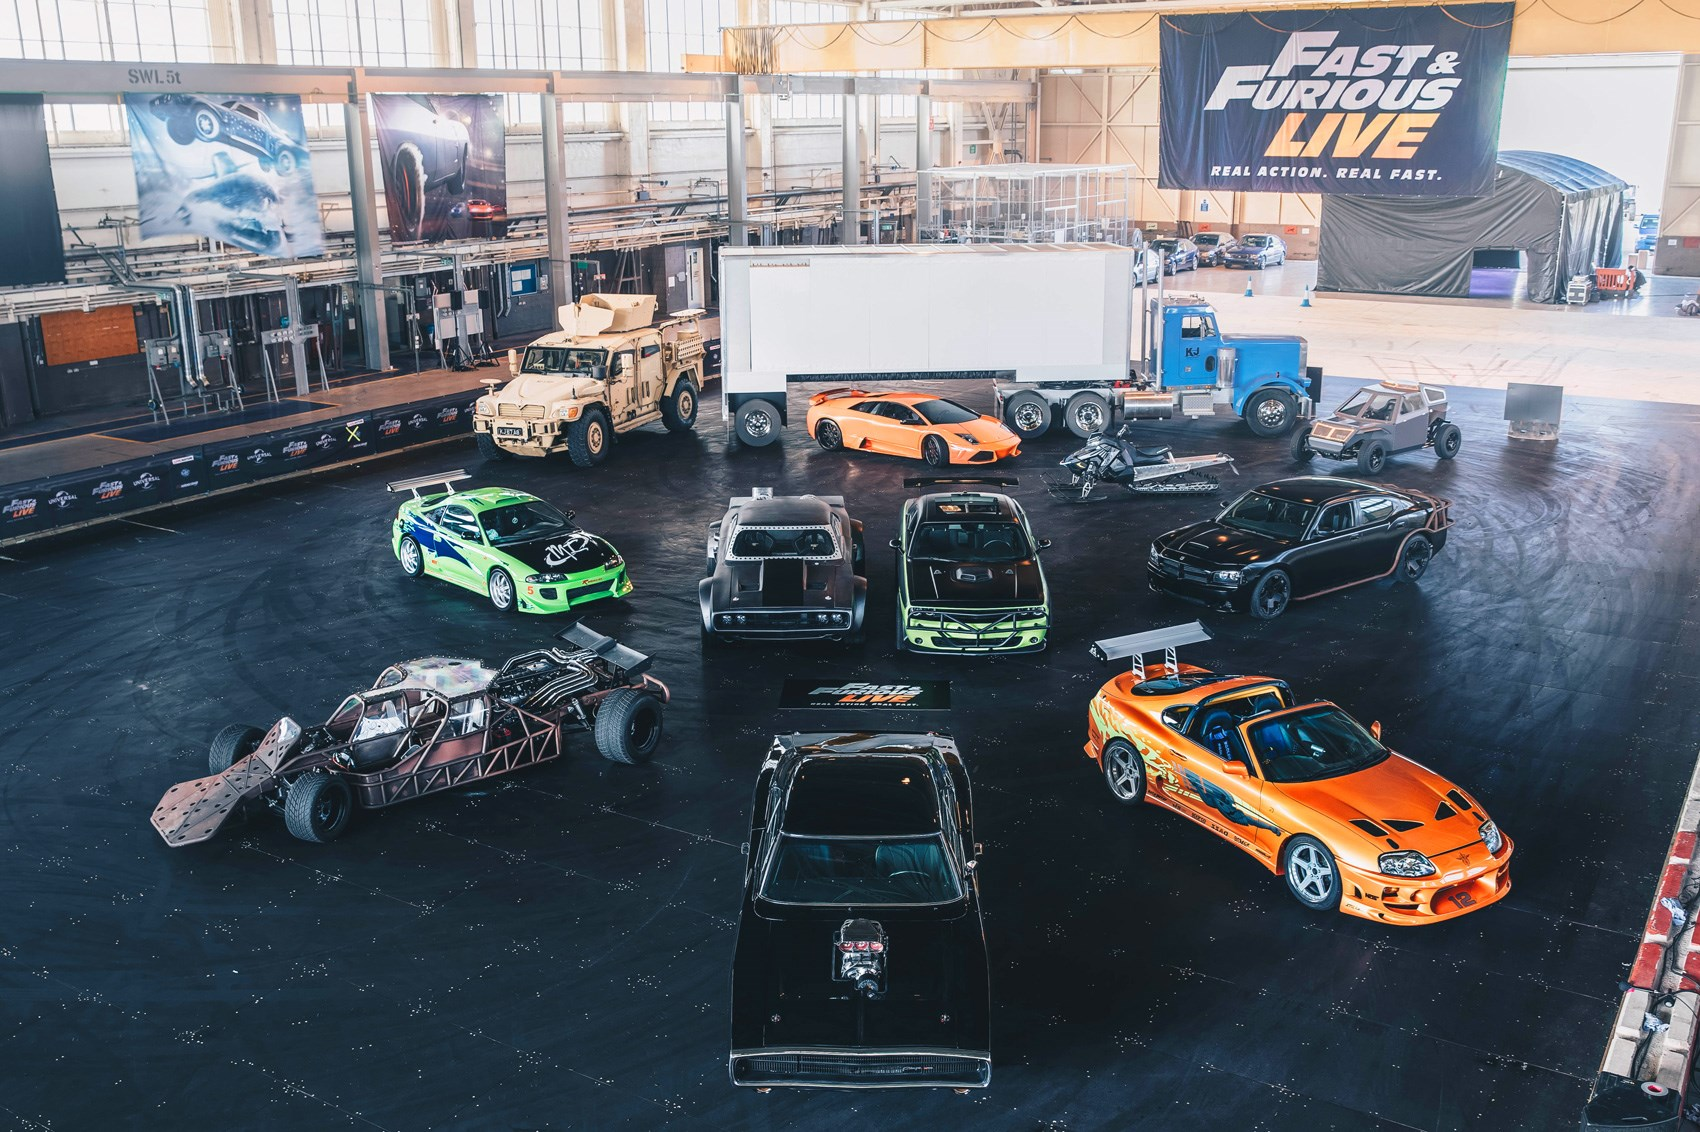 Fast And Furious Live Show All You Need To Know Car Magazine